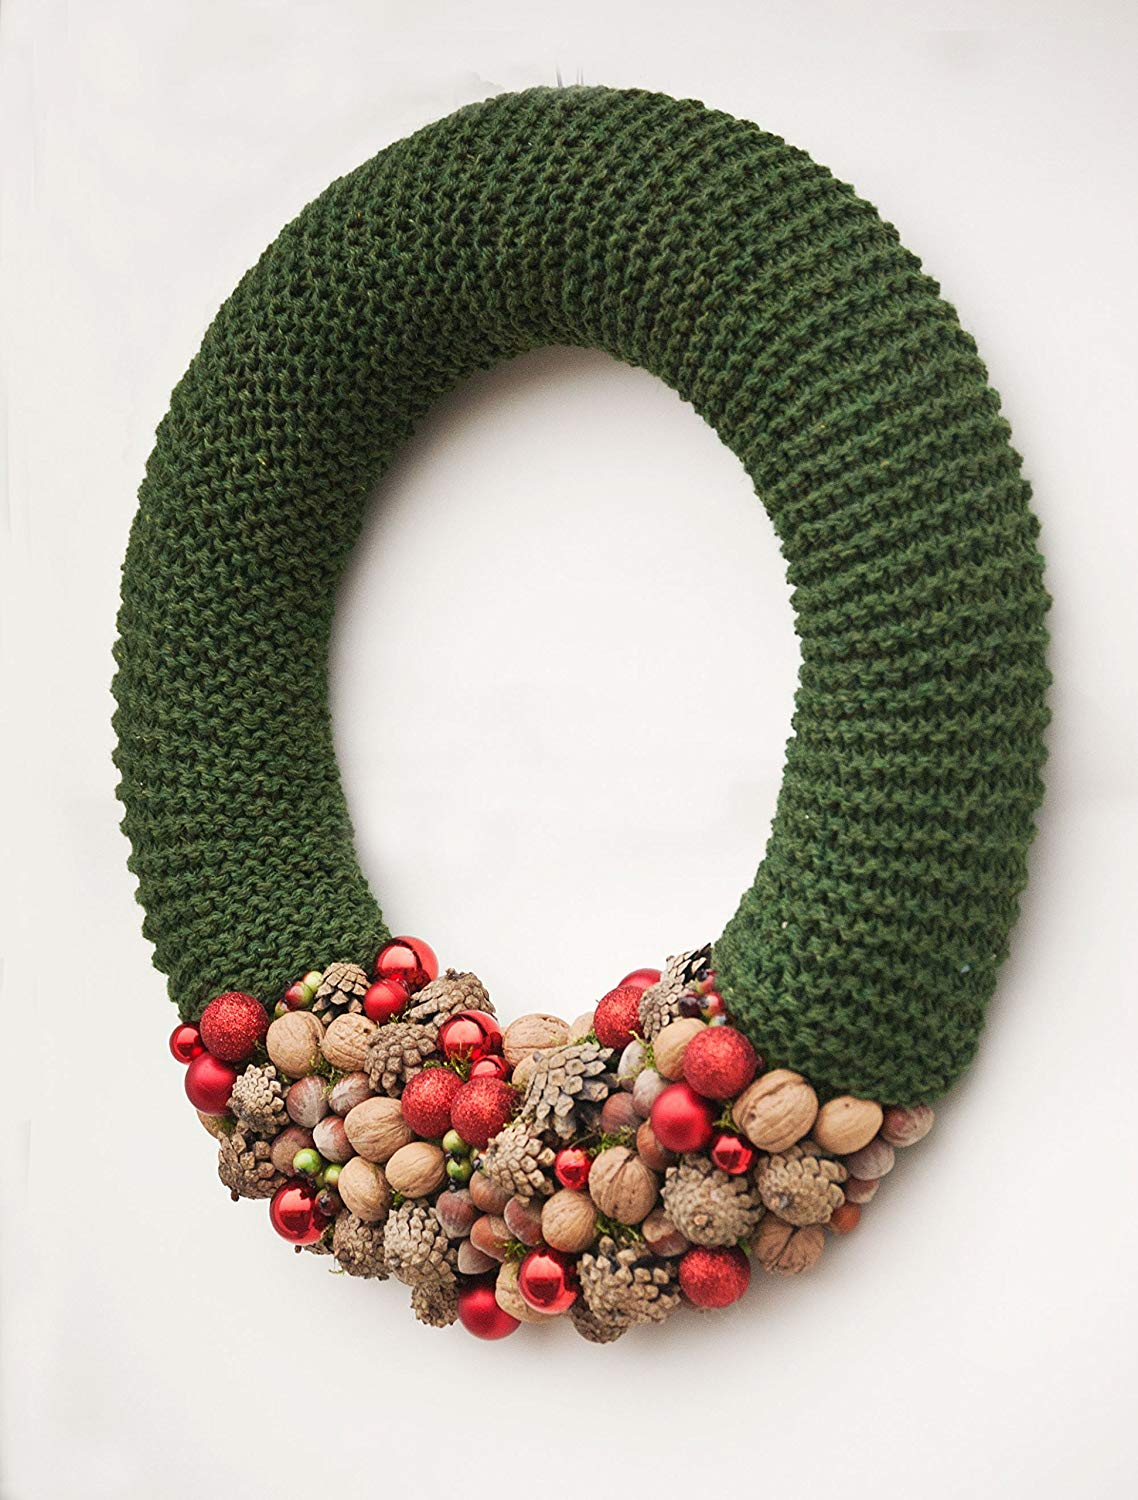 Rustic Christmas wreath, green with red baubles and nuts